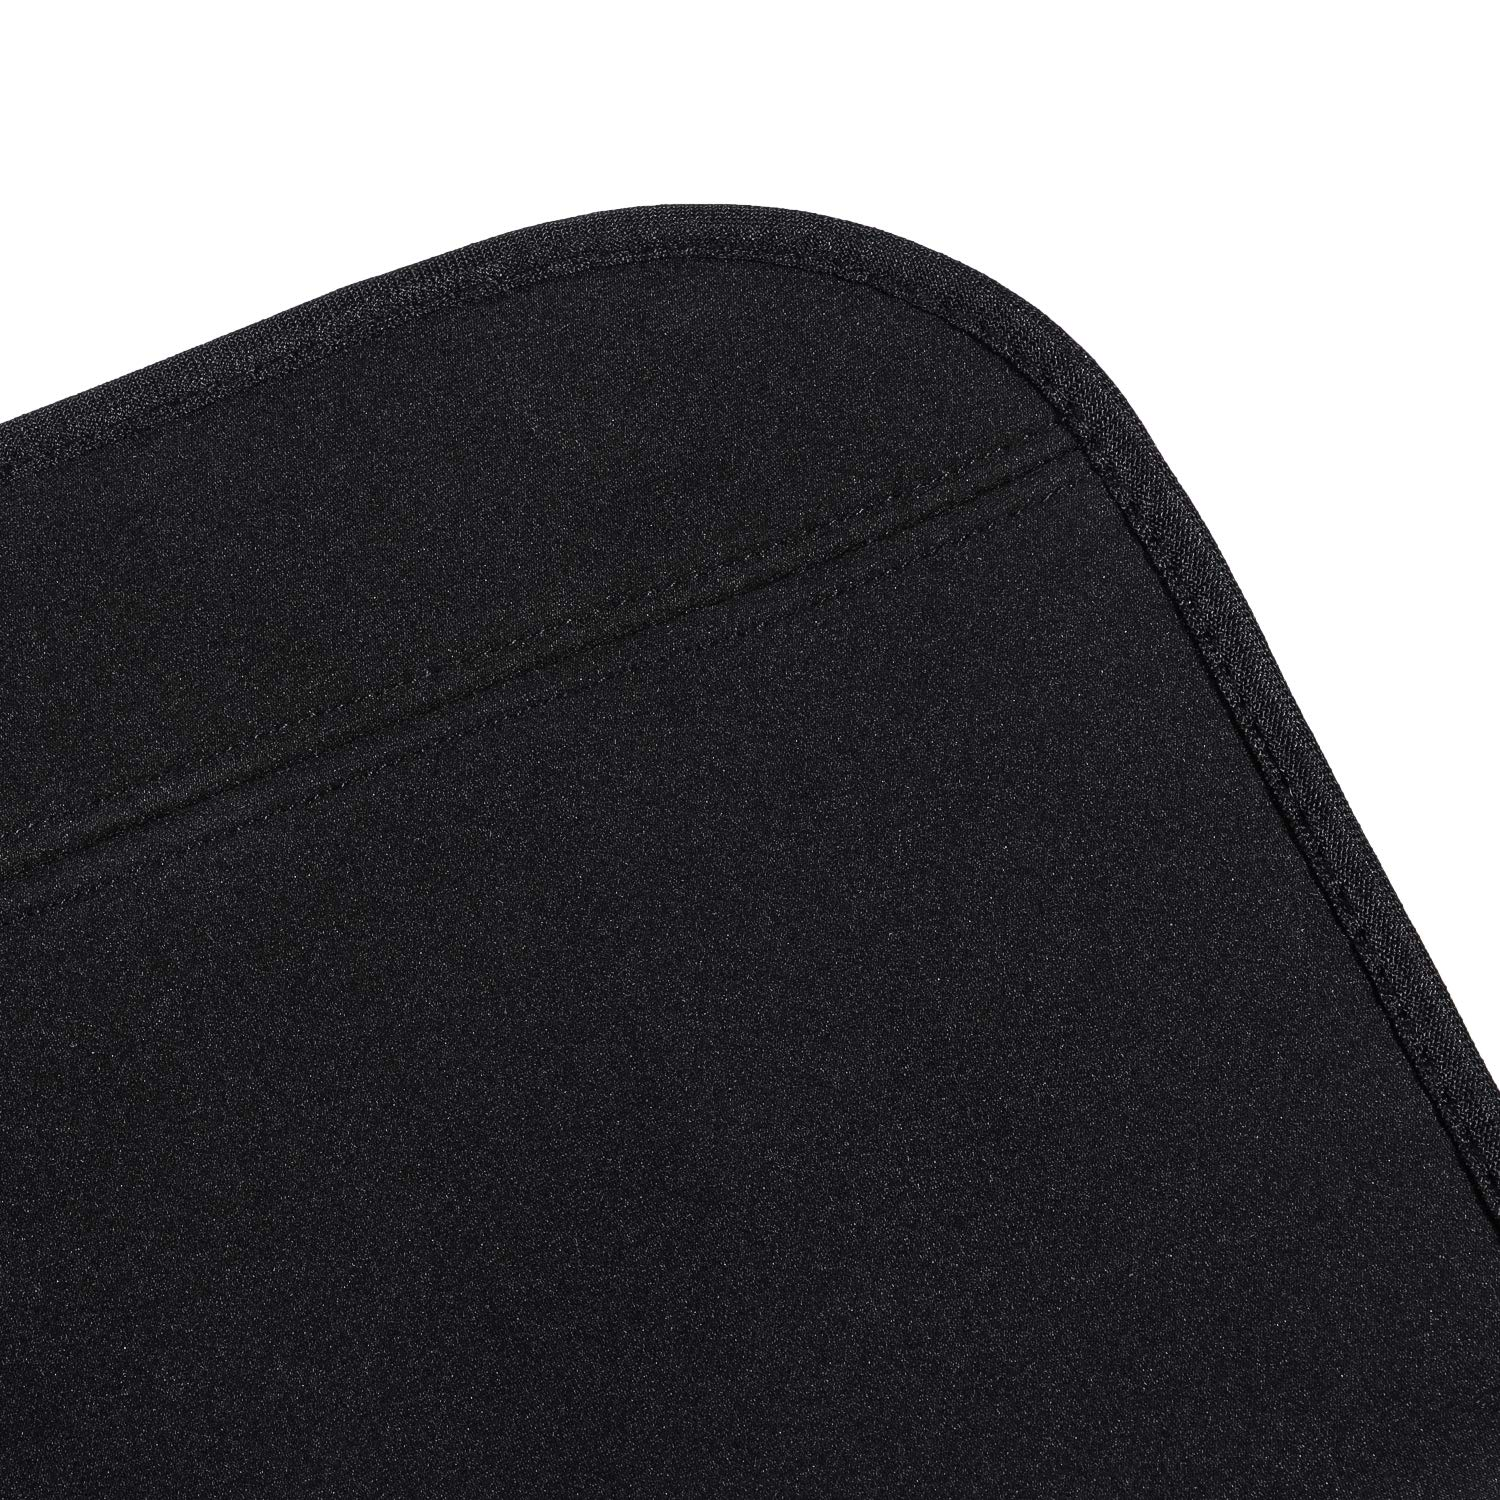 Neoprene Center Console Armrest Pad Cover Protector Cushion Black for Audi Q5 2009 2010 2011 2012 2013 2014 2015 2016 2017 SUV Sunluway 4350413311